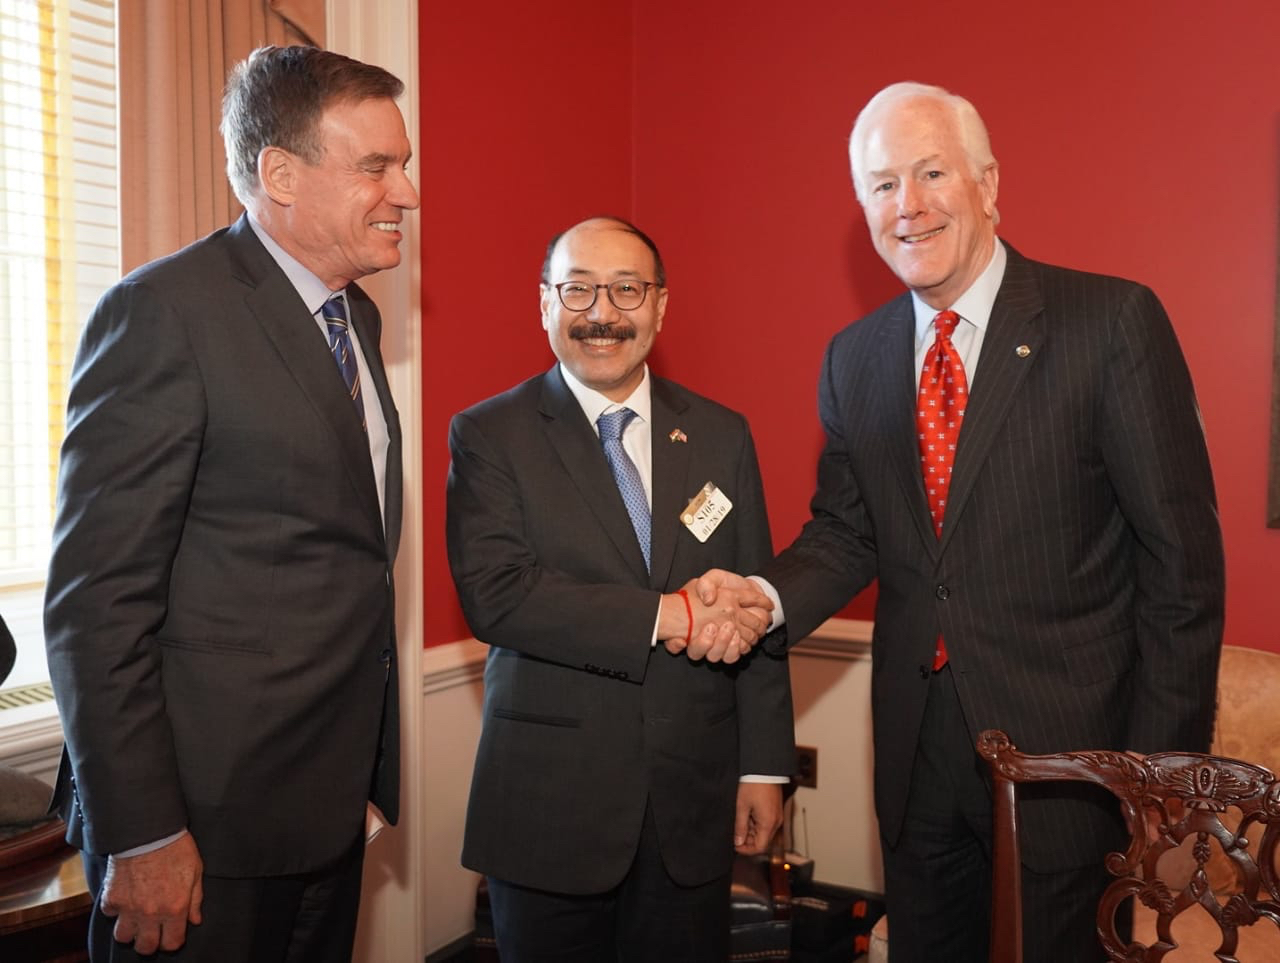 Senators Warner & Cornyn meet Shringla